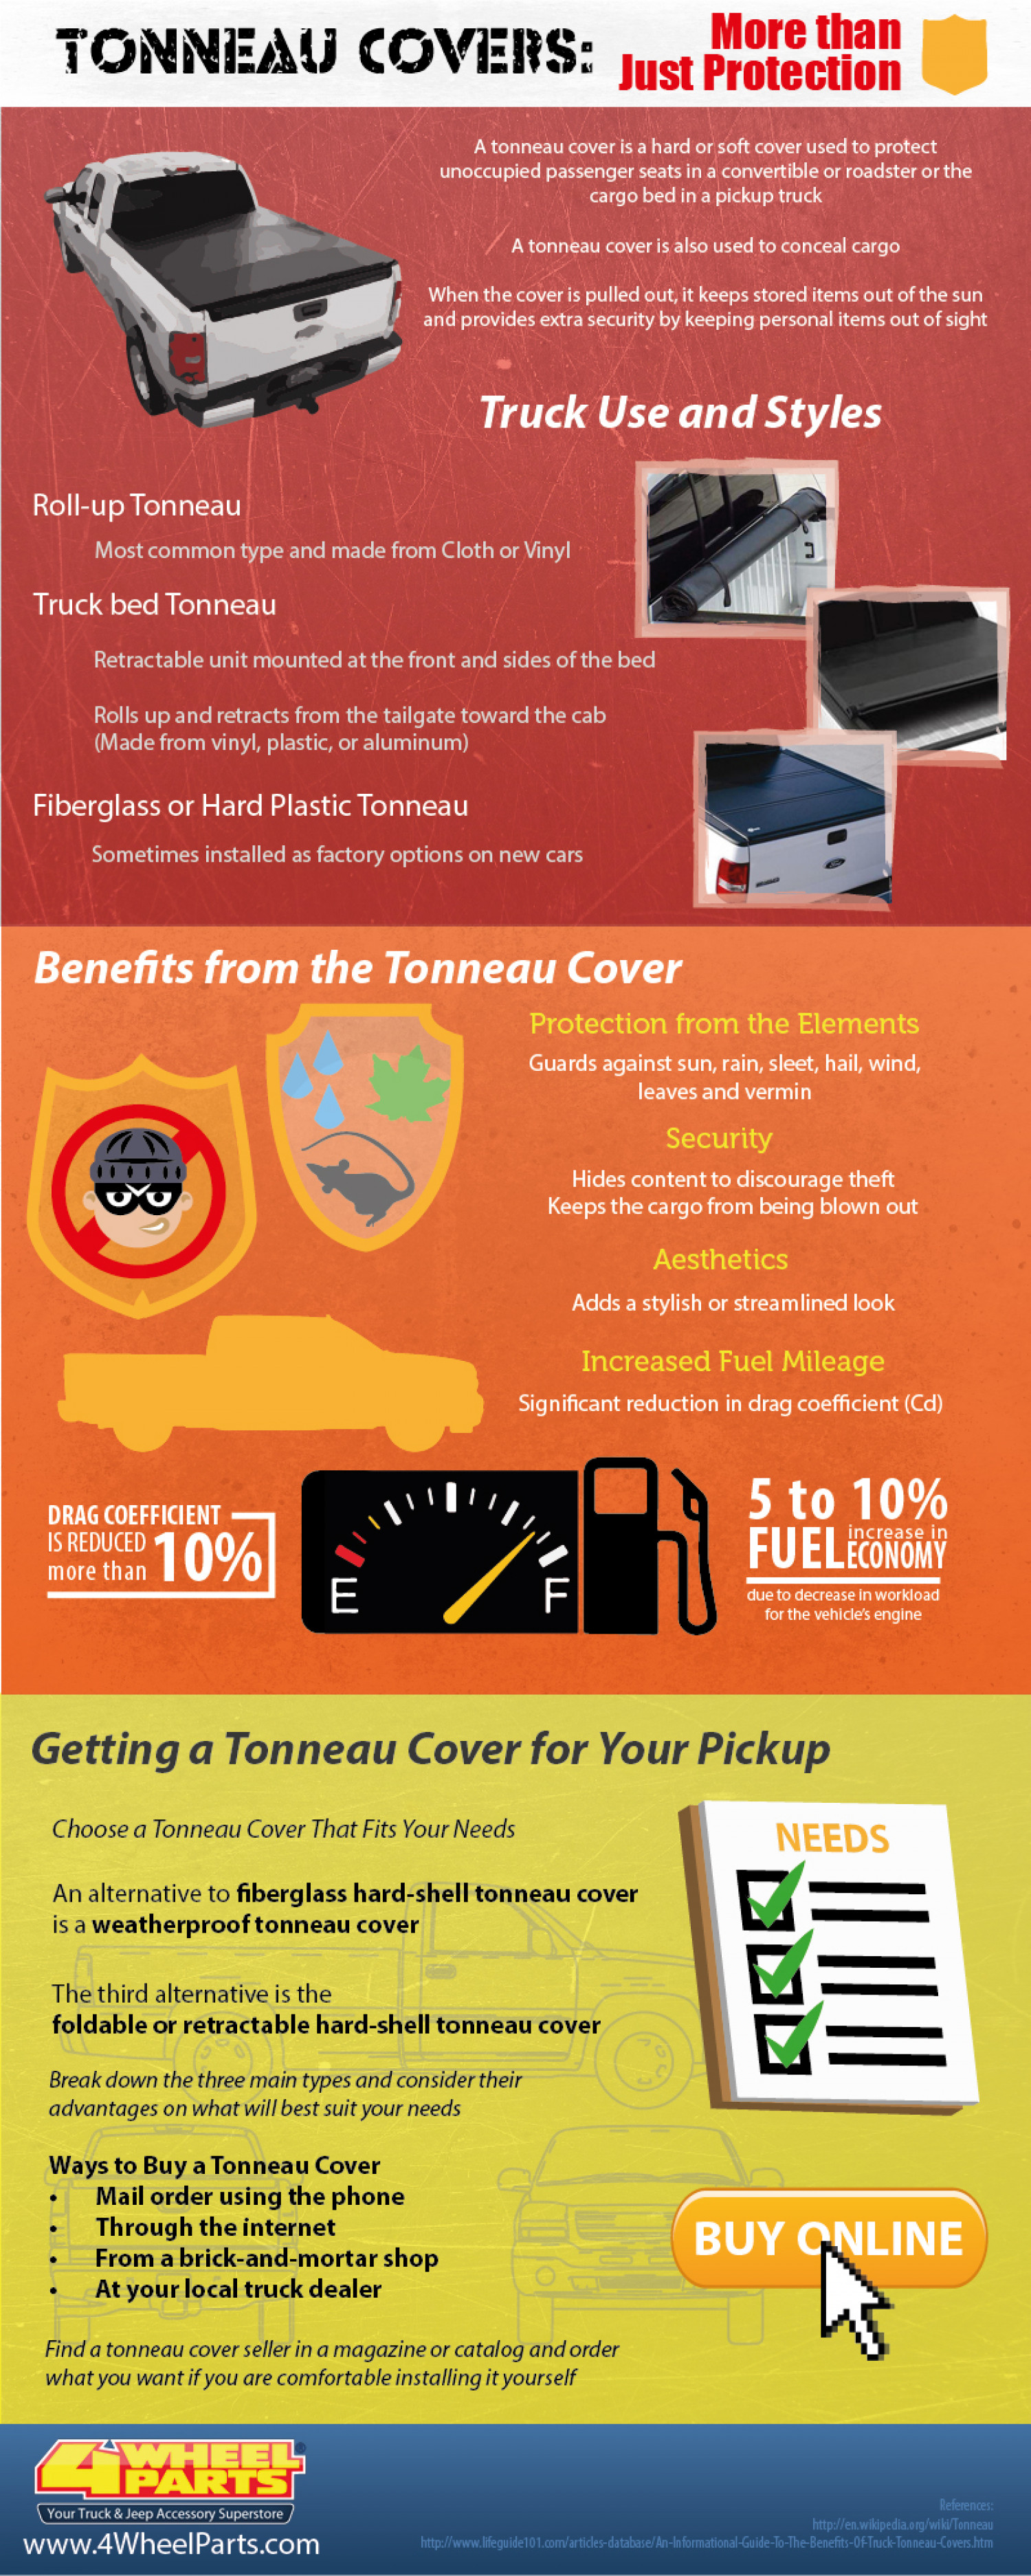 Tonneau Covers: More Than Just Protection Infographic